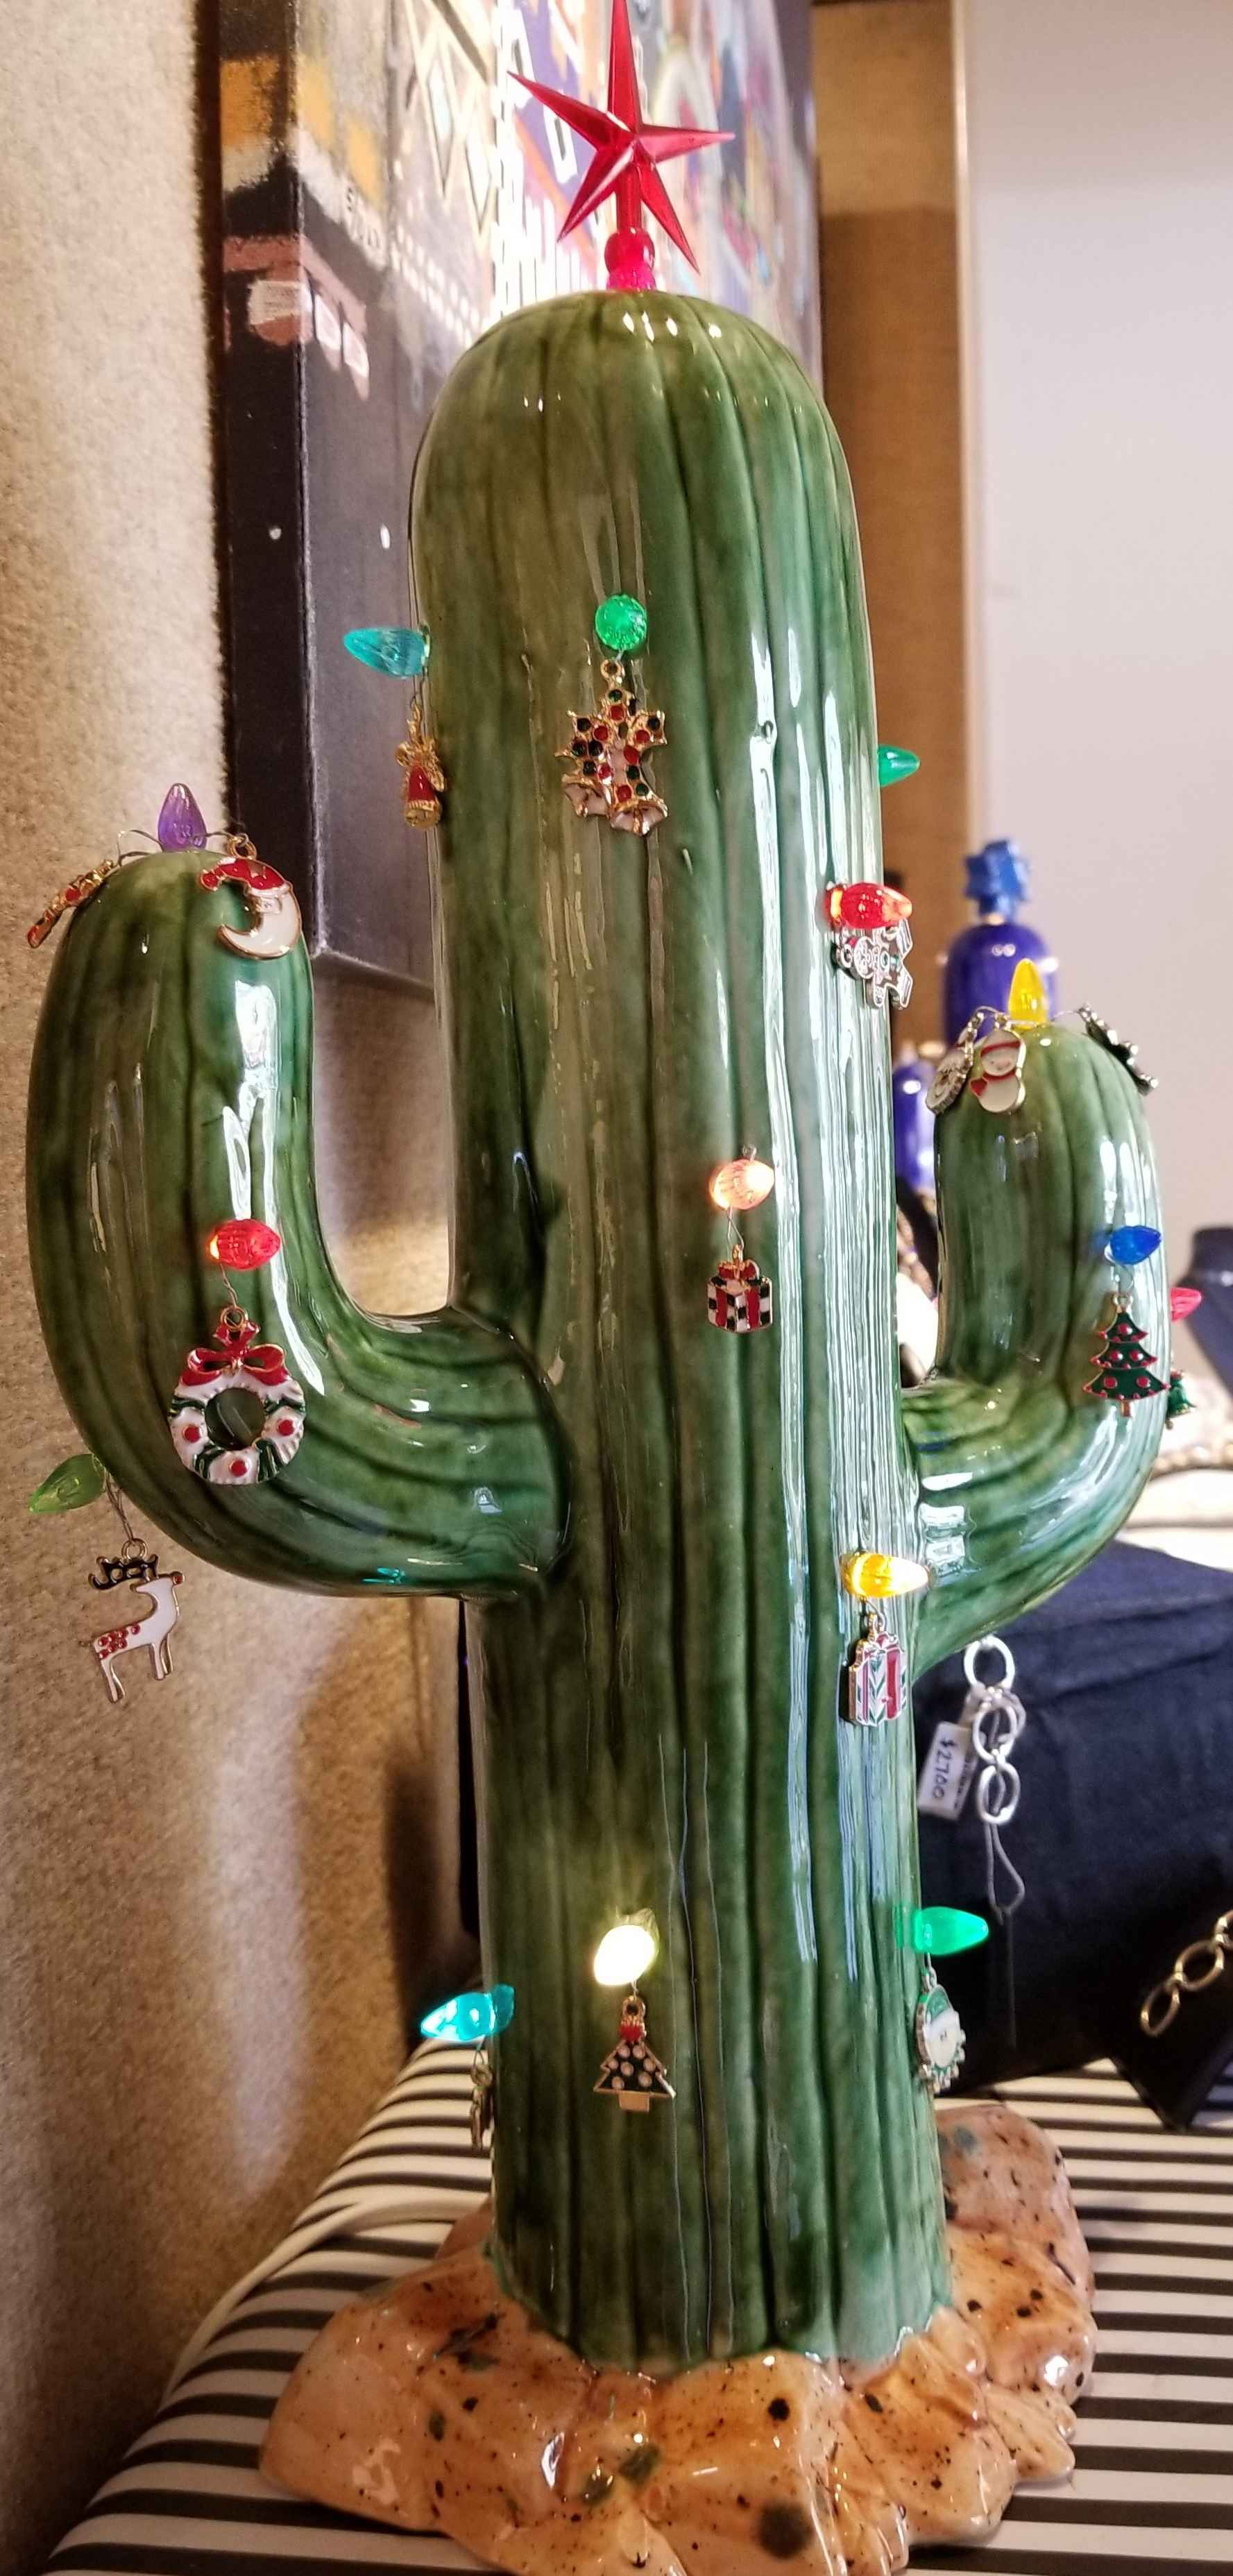 Christmas Cactus Lamp... by  Joe Chaffee - Masterpiece Online